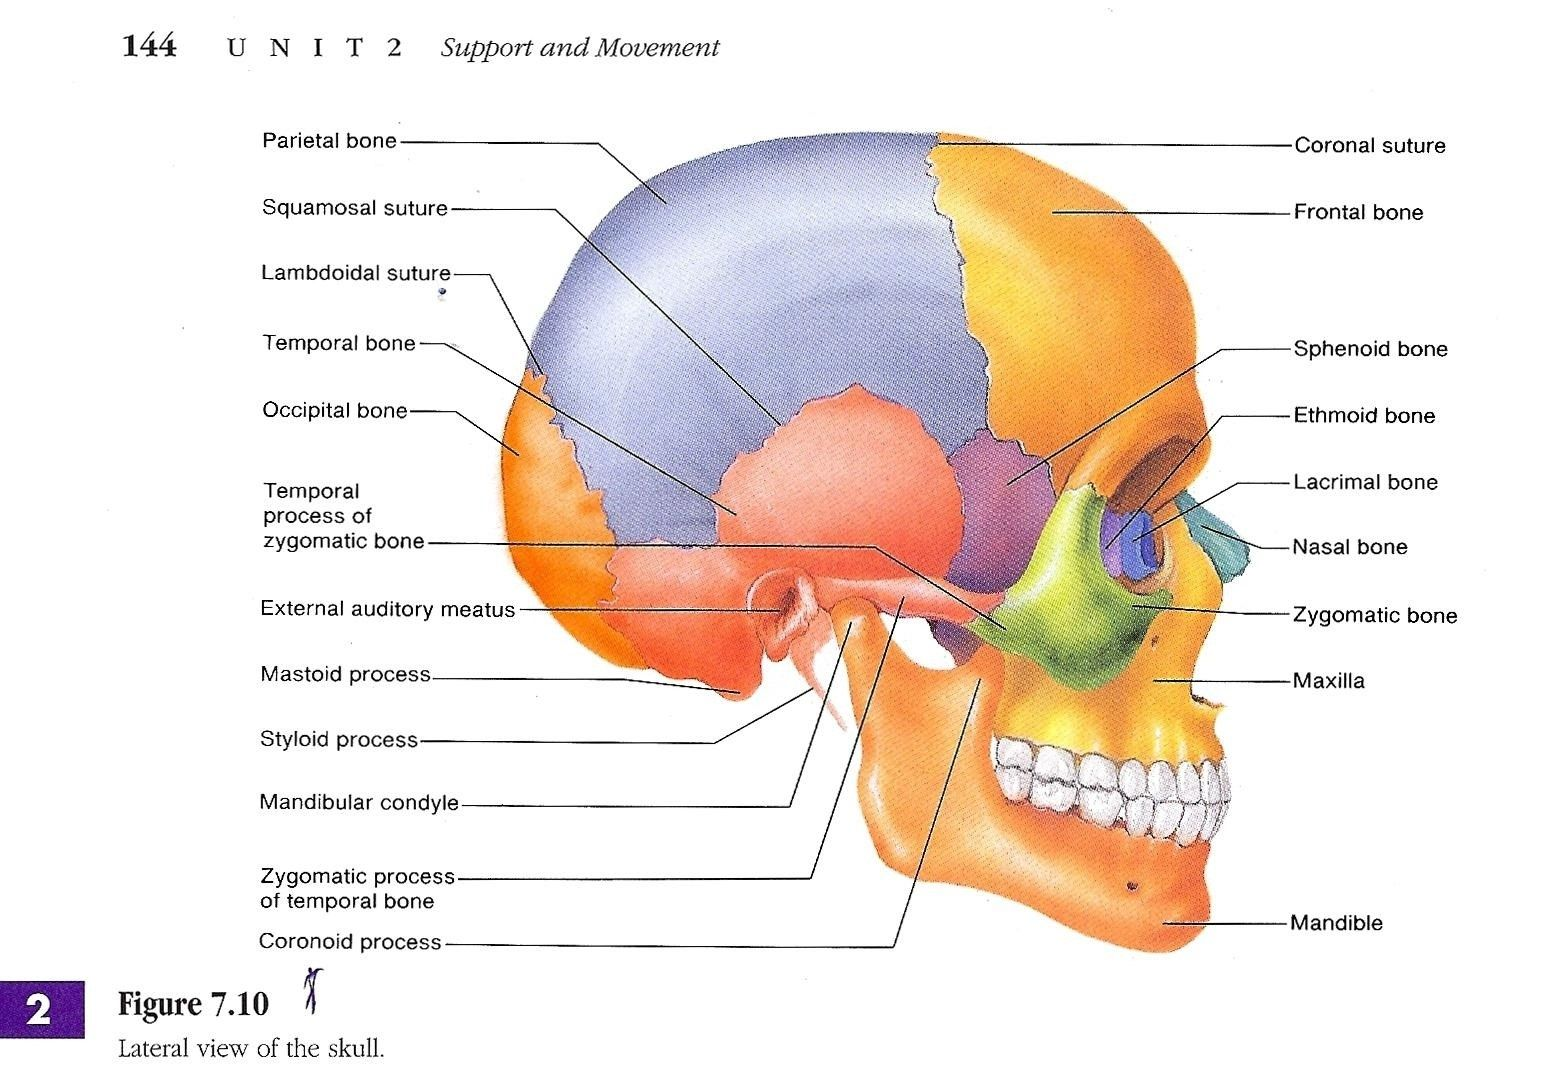 ethmoid bone diagram ethmoid bone diagram skull bone diagram photos skull labeling exercises human anatomy [ 1548 x 1077 Pixel ]